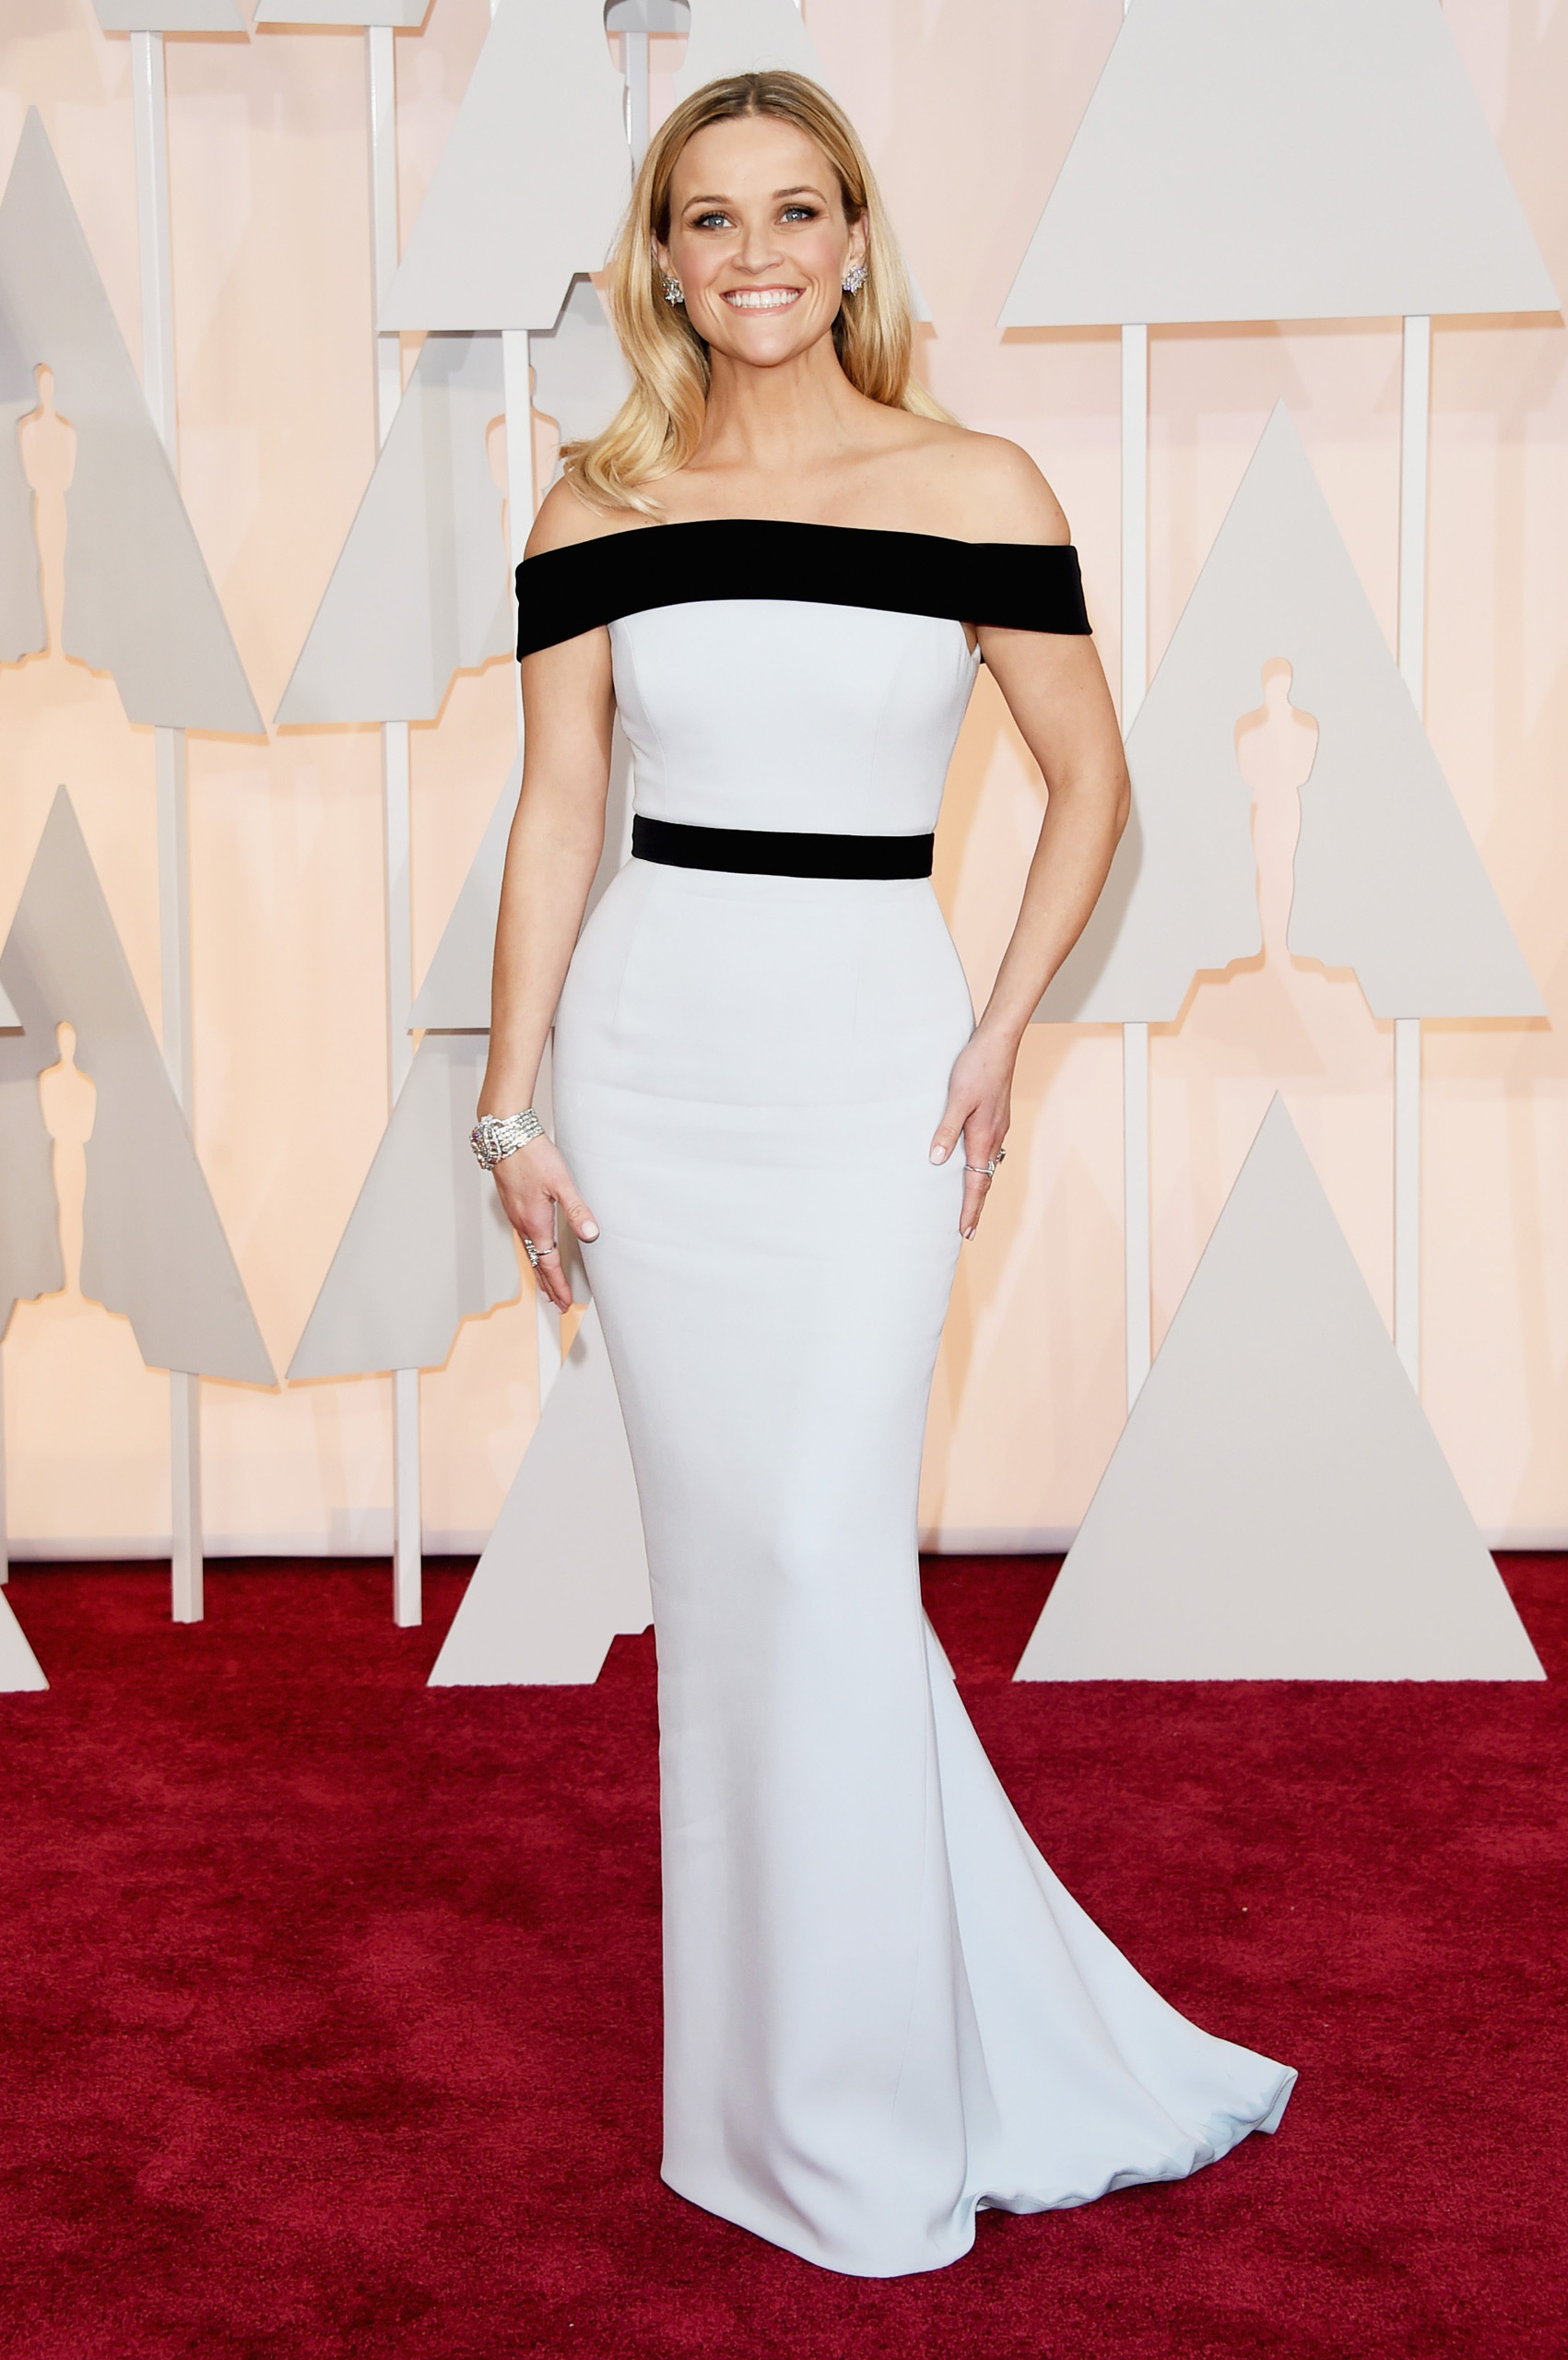 Reese Witherspoon attends the 87th Annual Academy Awards on Feb. 22, 2015 in Hollywood, Calif.